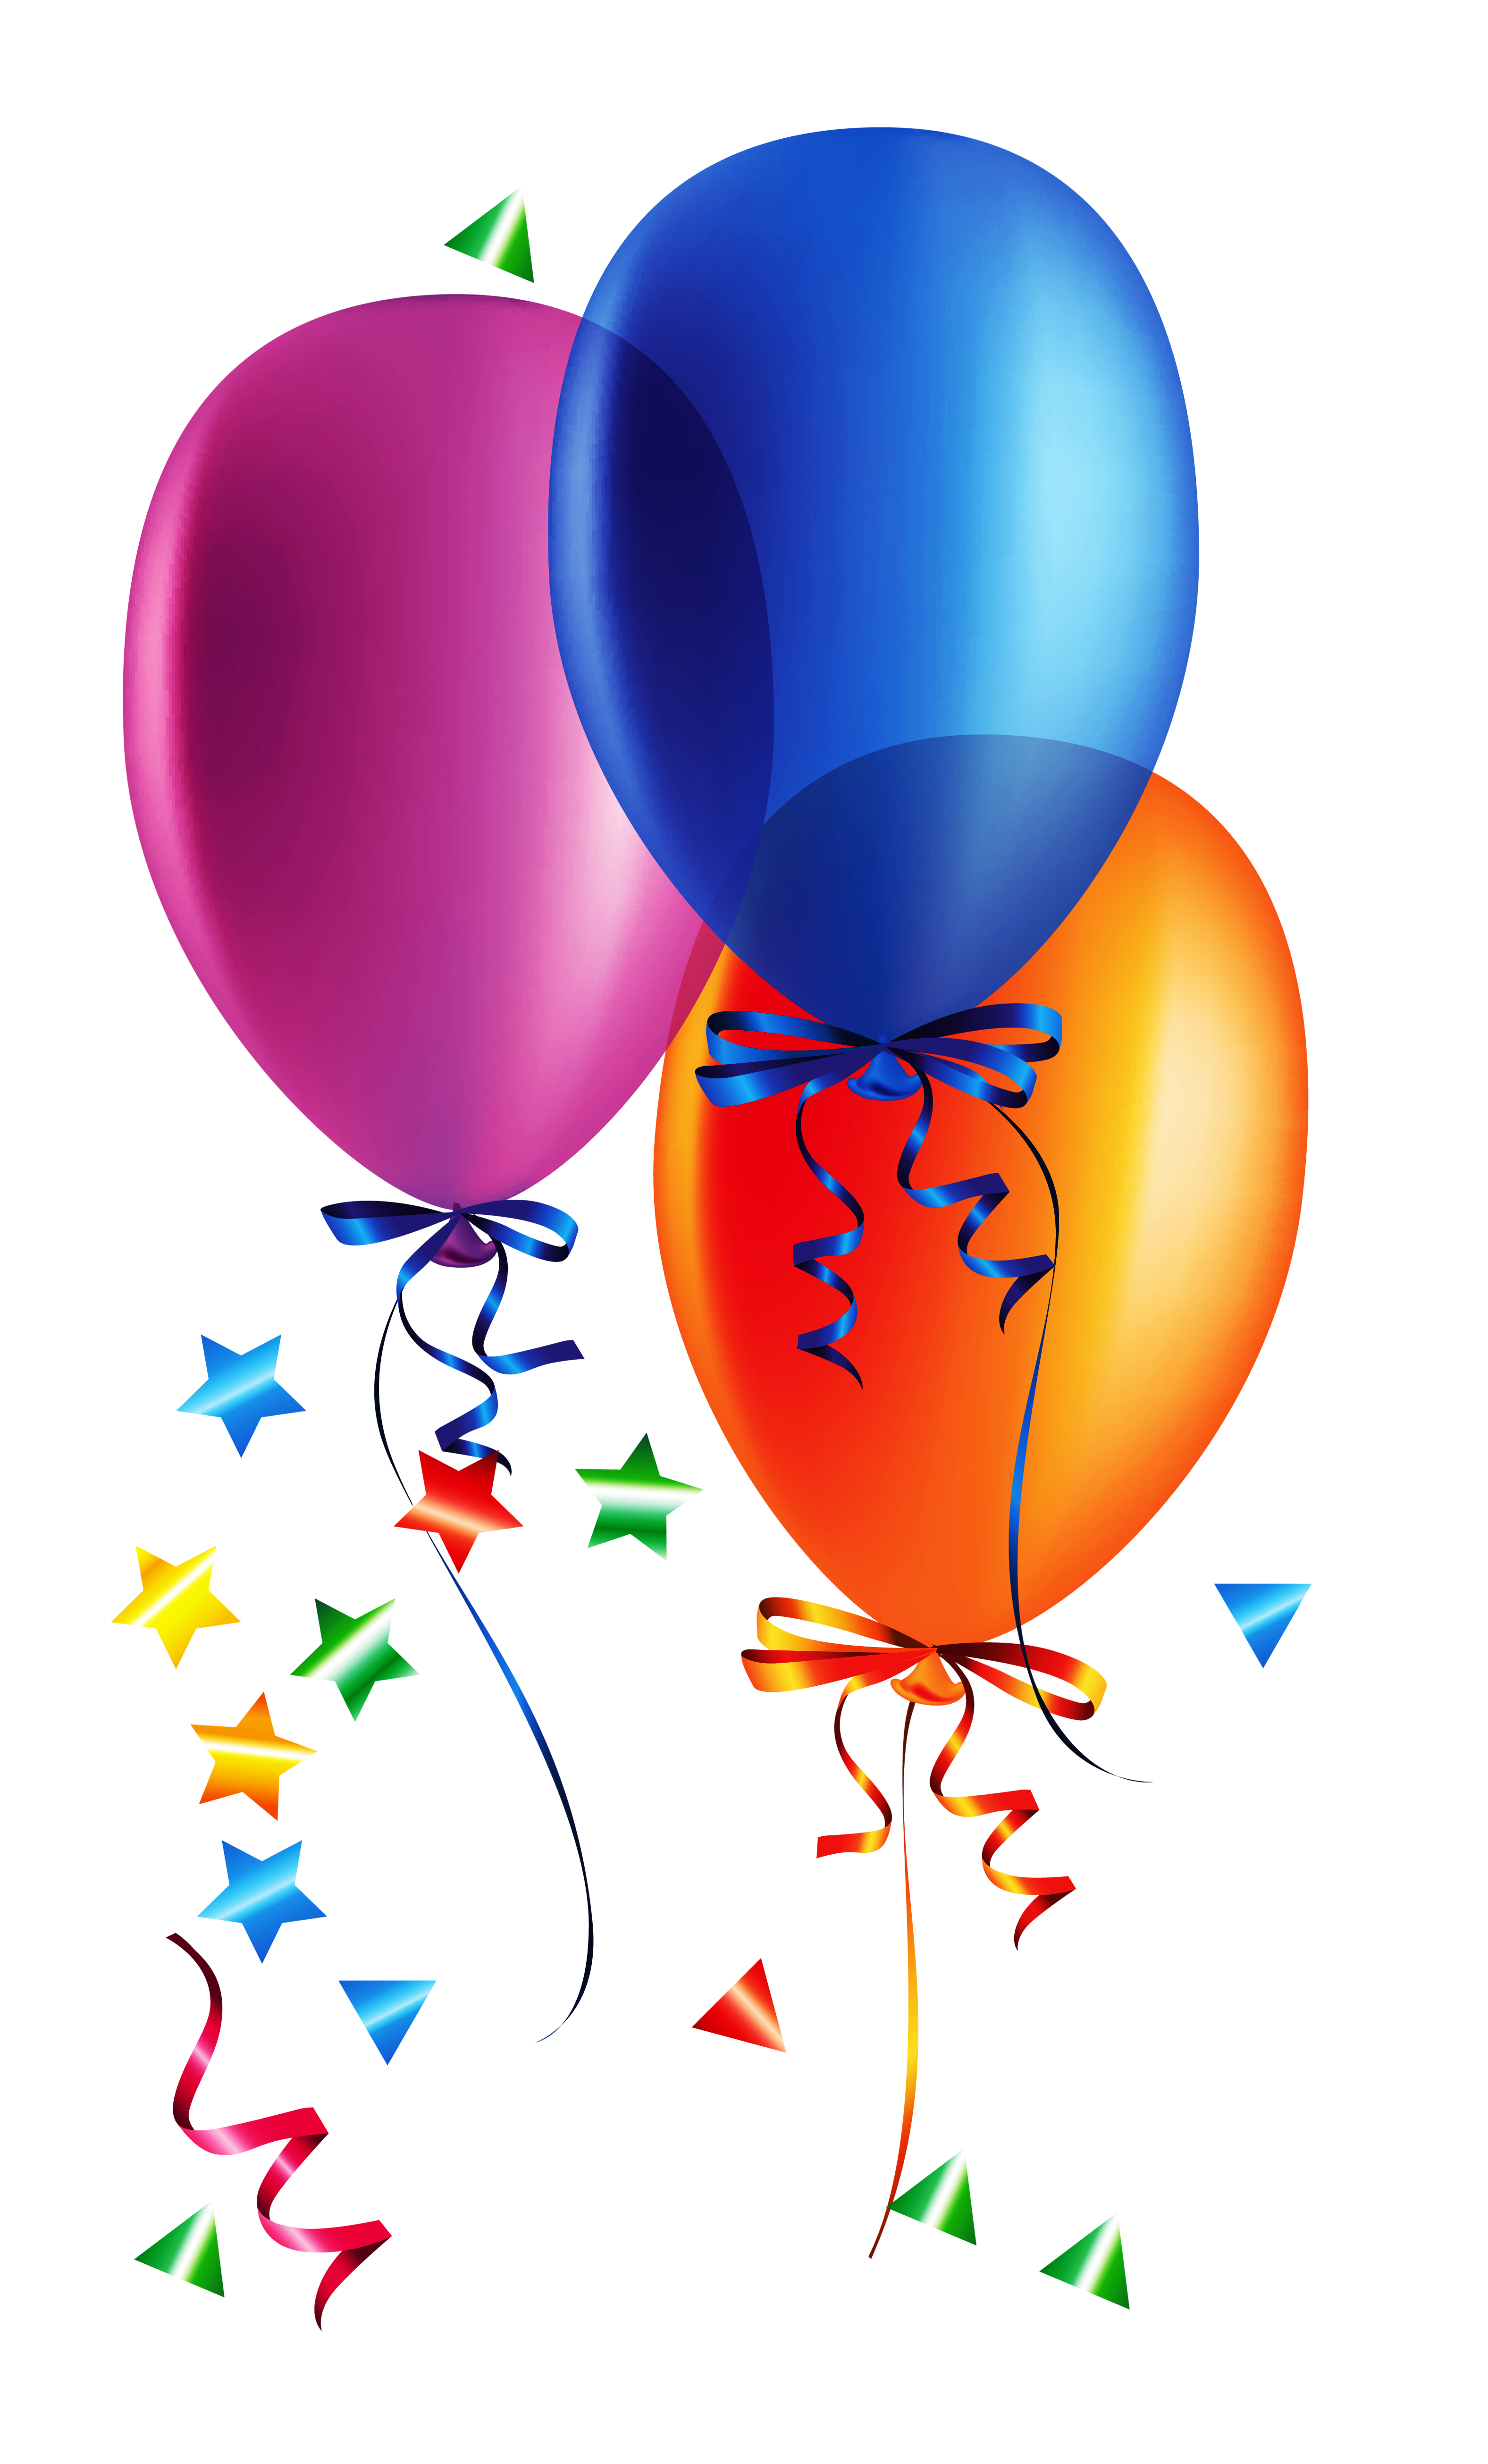 Free Balloon Background Cliparts, Download Free Clip Art.